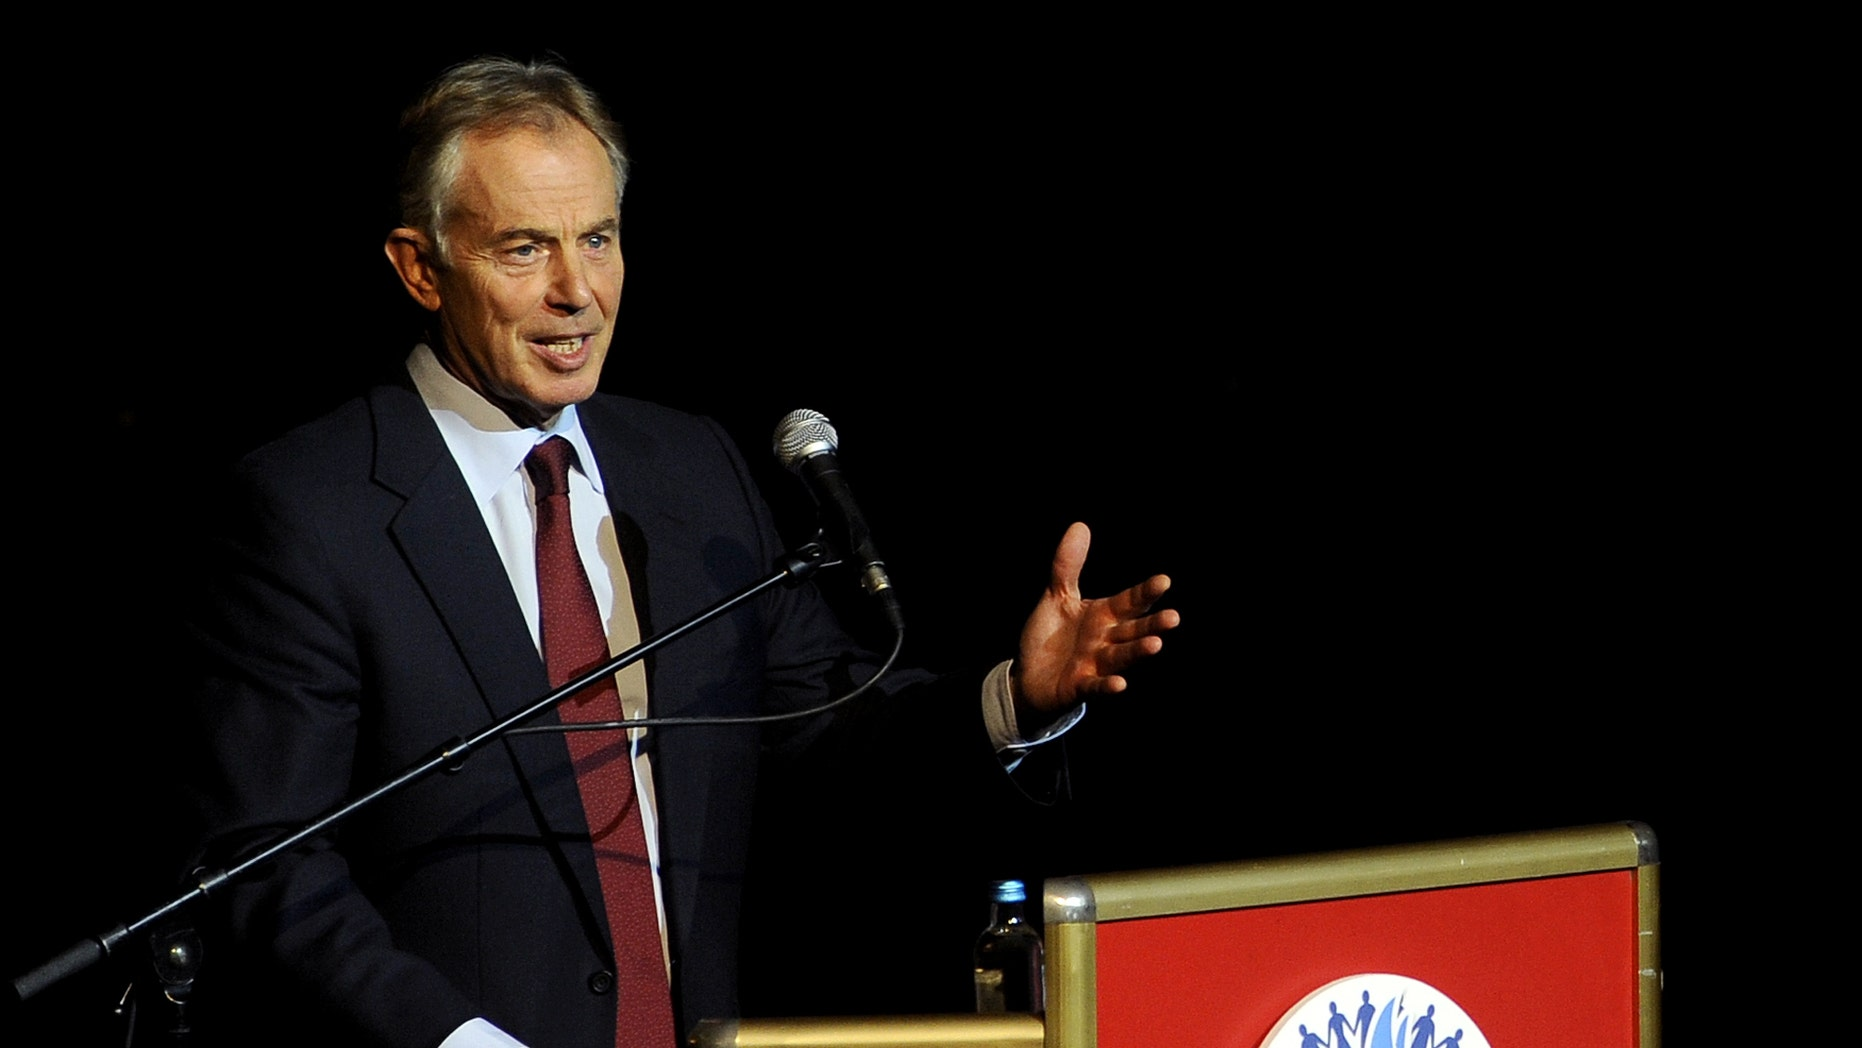 """Former British Prime Minister Tony Blair speaks at the Balkan Peace Festival, organized by the Indian """"Sahara Group"""" in honor of the International Day of Non-Violence, in Skopje, Macedonia, Wednesday, Oct. 2, 2013. (AP Photo/Boris Grdanoski)"""